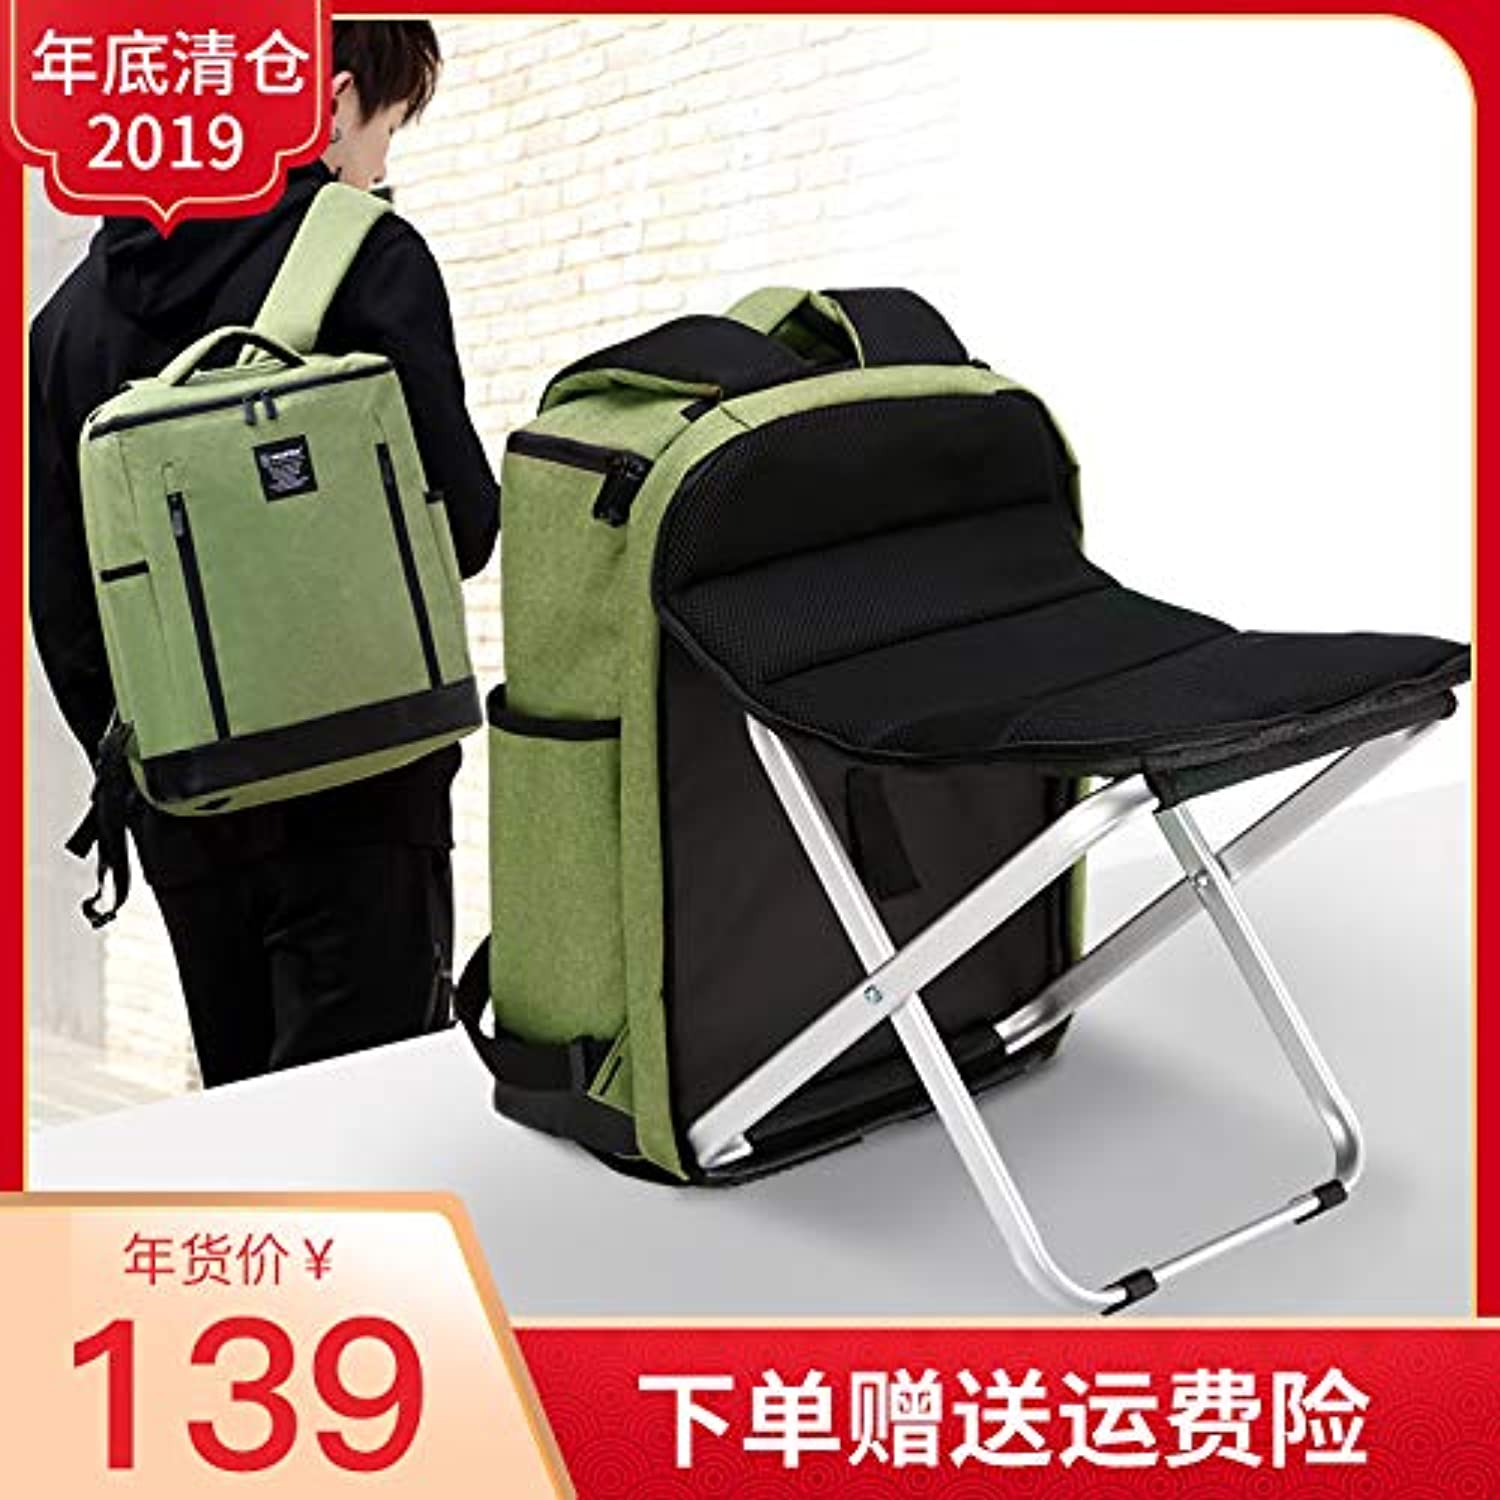 Chair Computer Backpack Men with Stool Outdoor Travel Leisure Shoulder Bag Business Charging MultiFunction Men's Bag